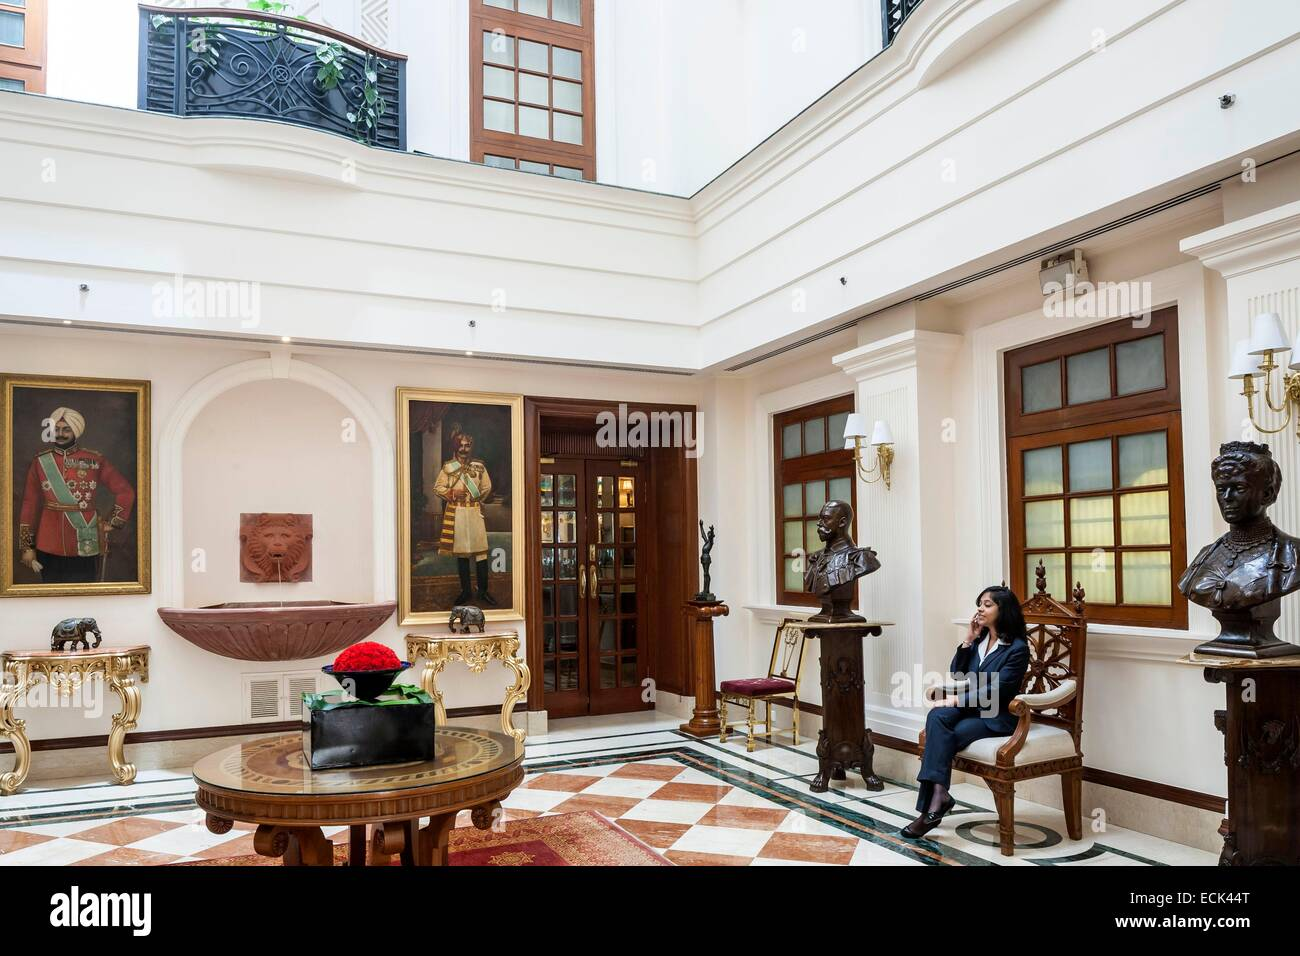 india new delhi janpath the imperial luxury hotel opened in 1936 stock photo royalty free. Black Bedroom Furniture Sets. Home Design Ideas